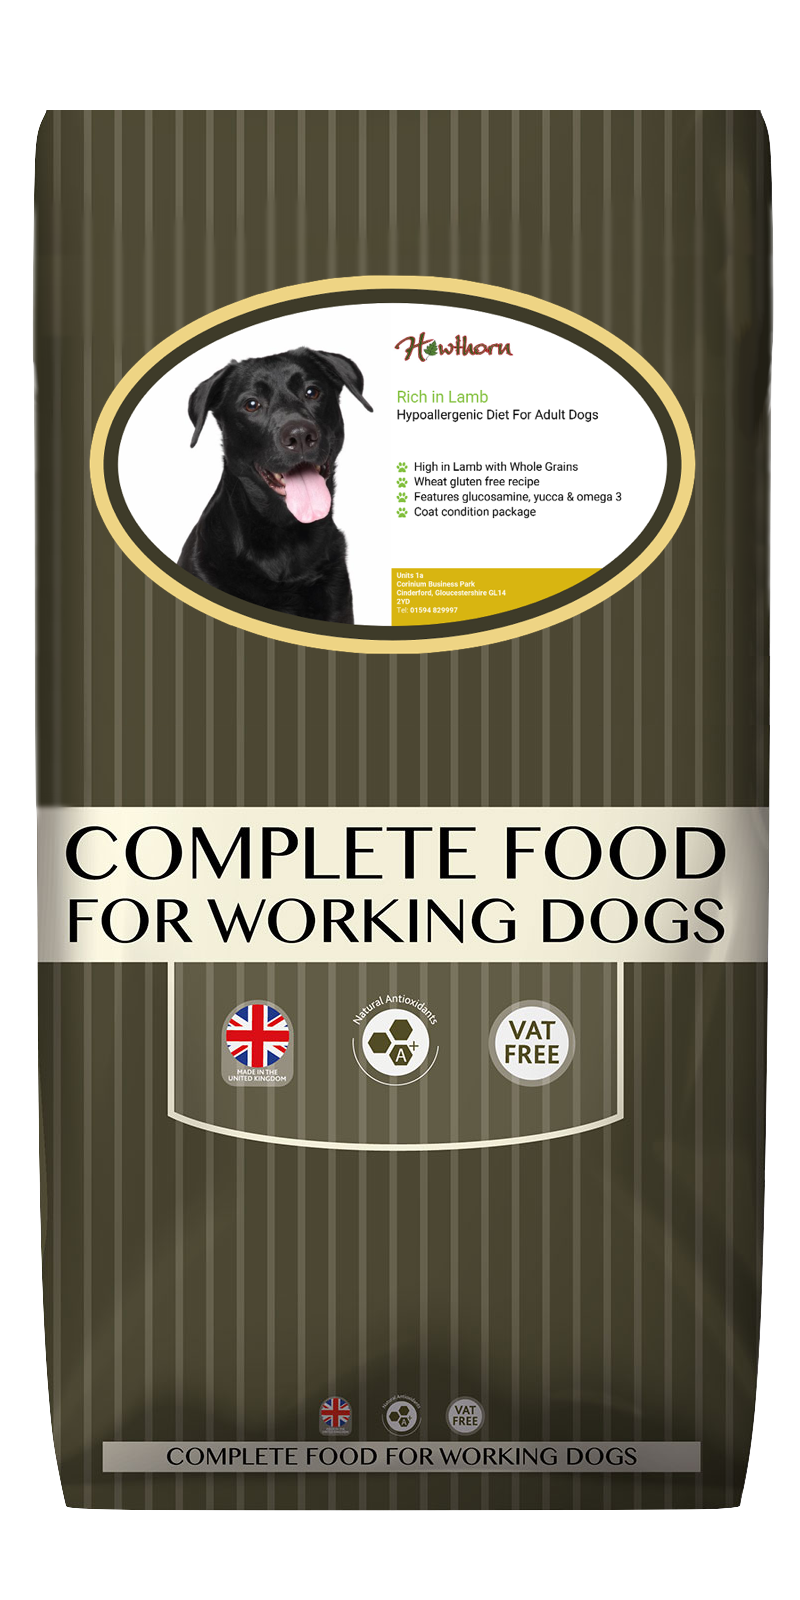 High-quality lamb dog food, with high protein for working dogs chosen by us for its great value bag